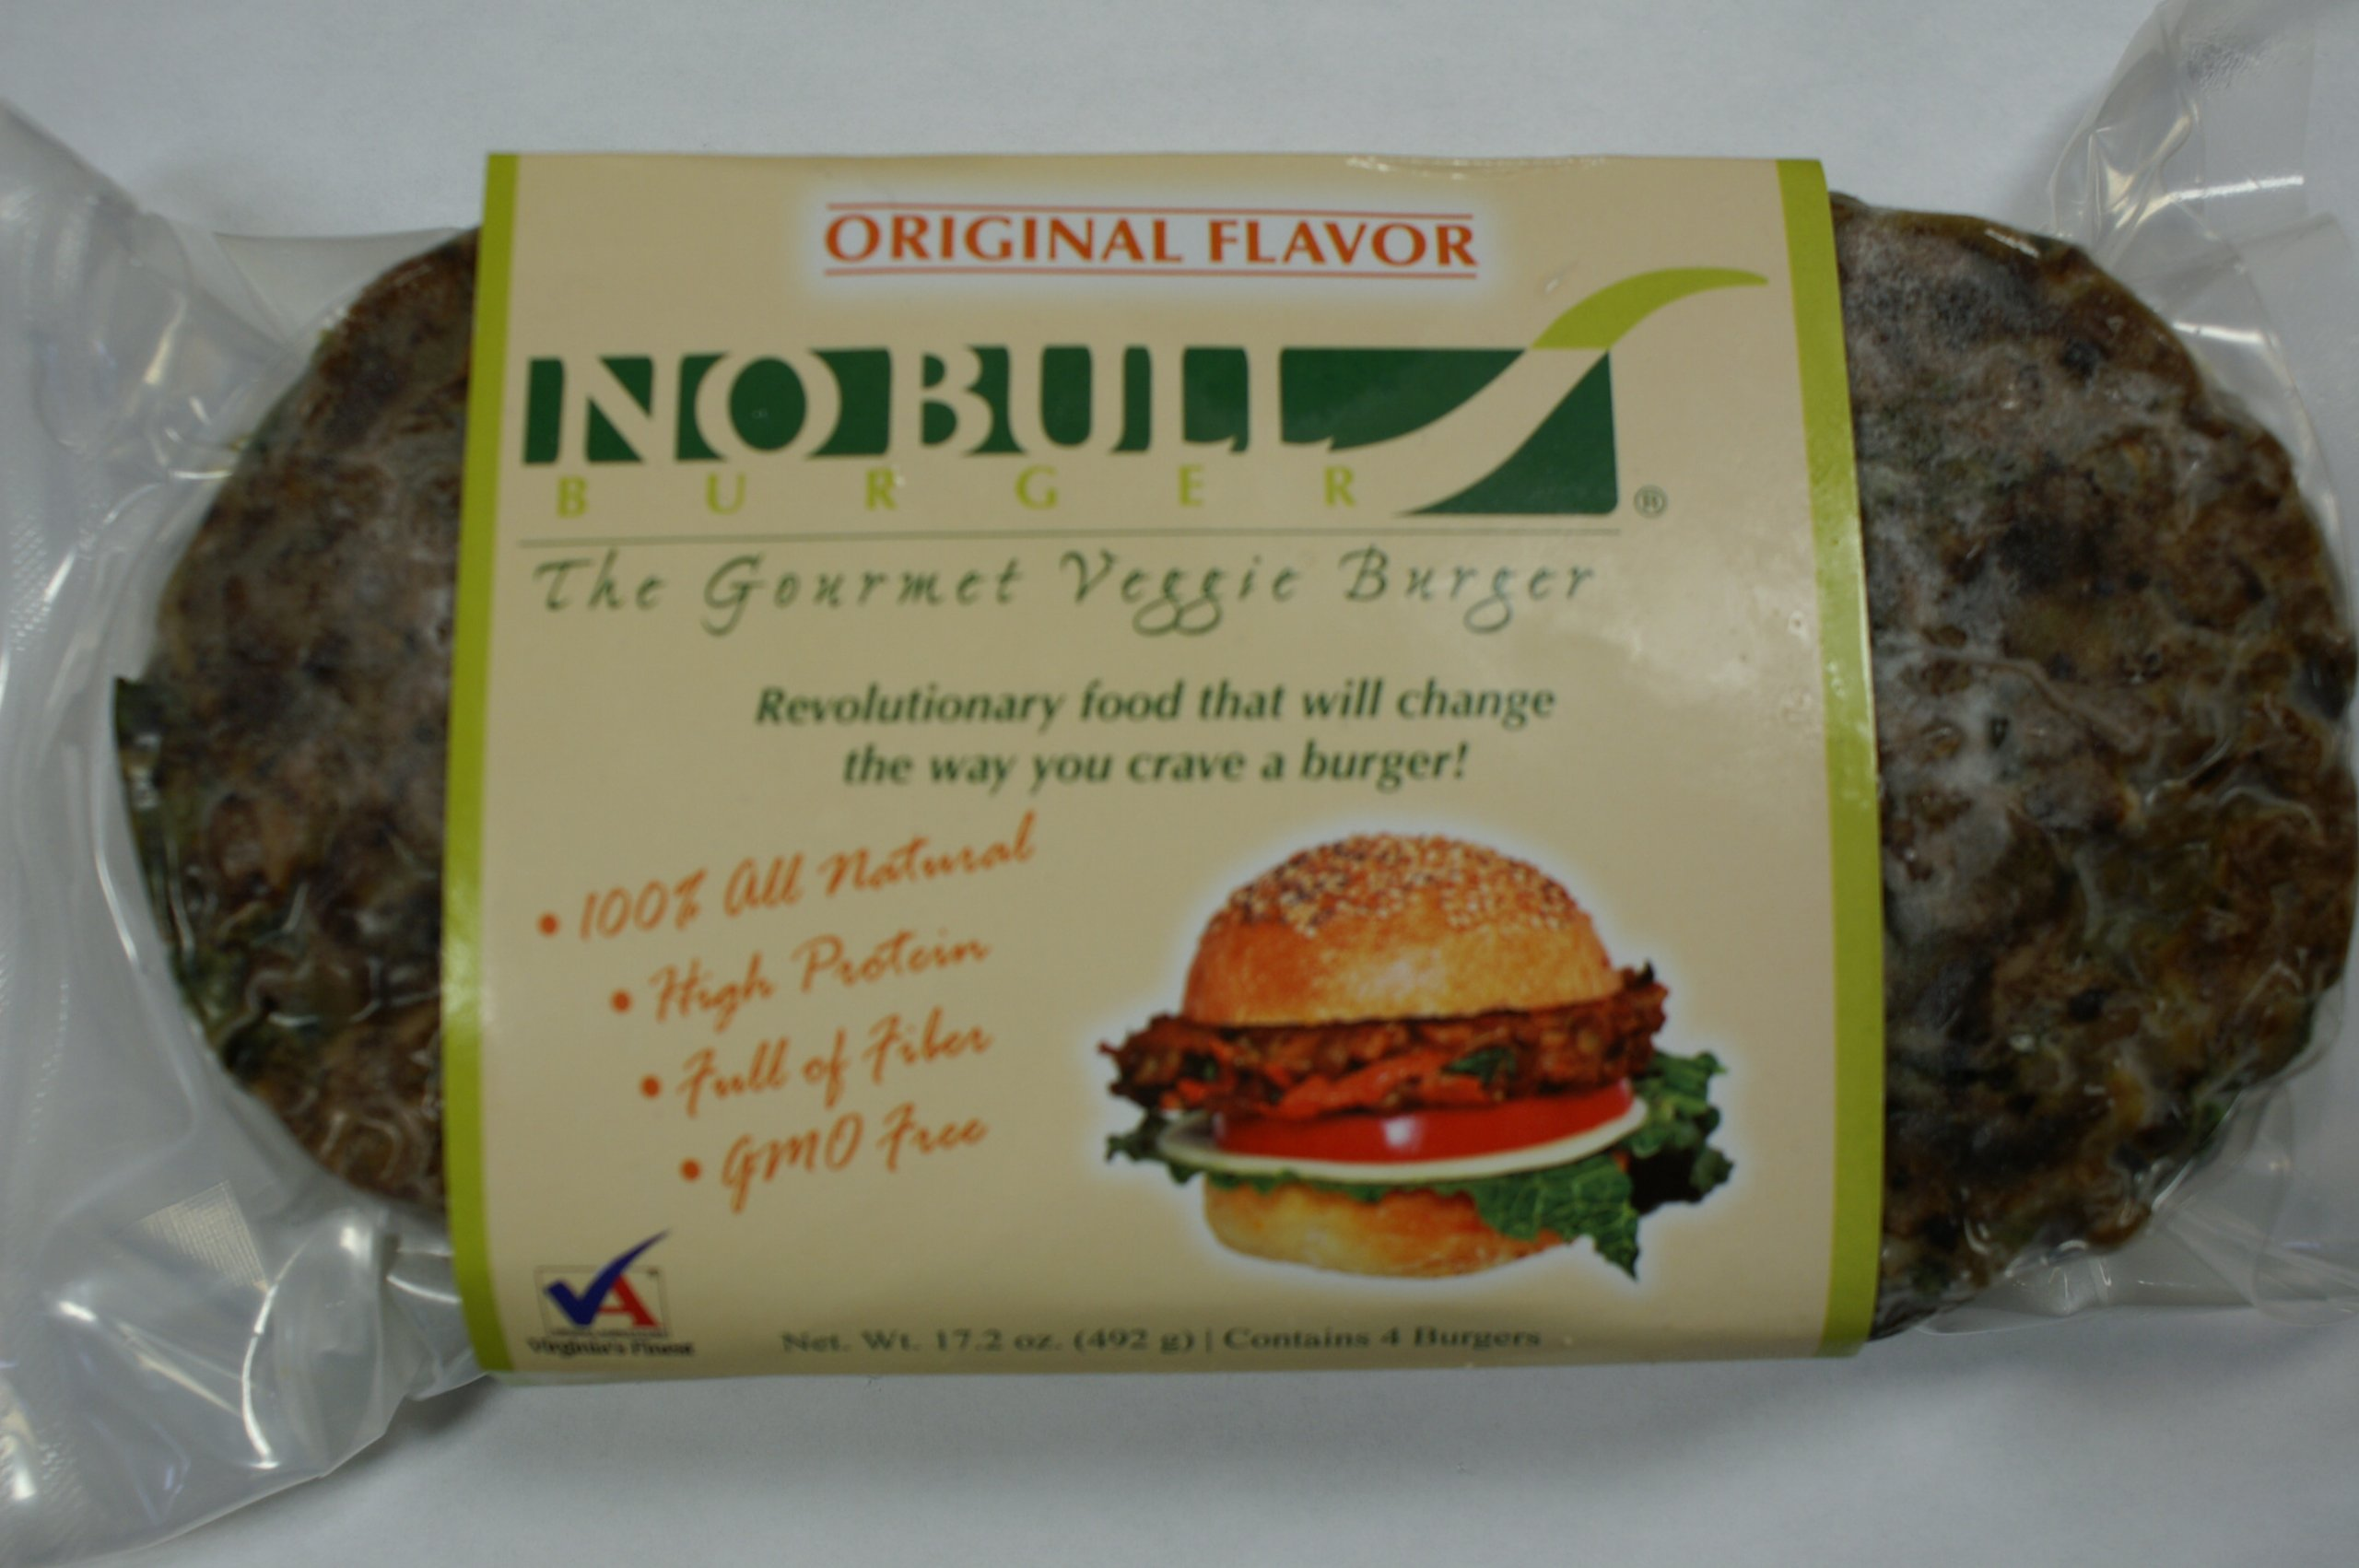 No Bull Gourmet Veggie Burger Original 24 Cooked & Frozen Burgers -12 - 2 packs - 1/4 pound per burger - All Natural & Organic -GMO Free Simply Heat & Serve